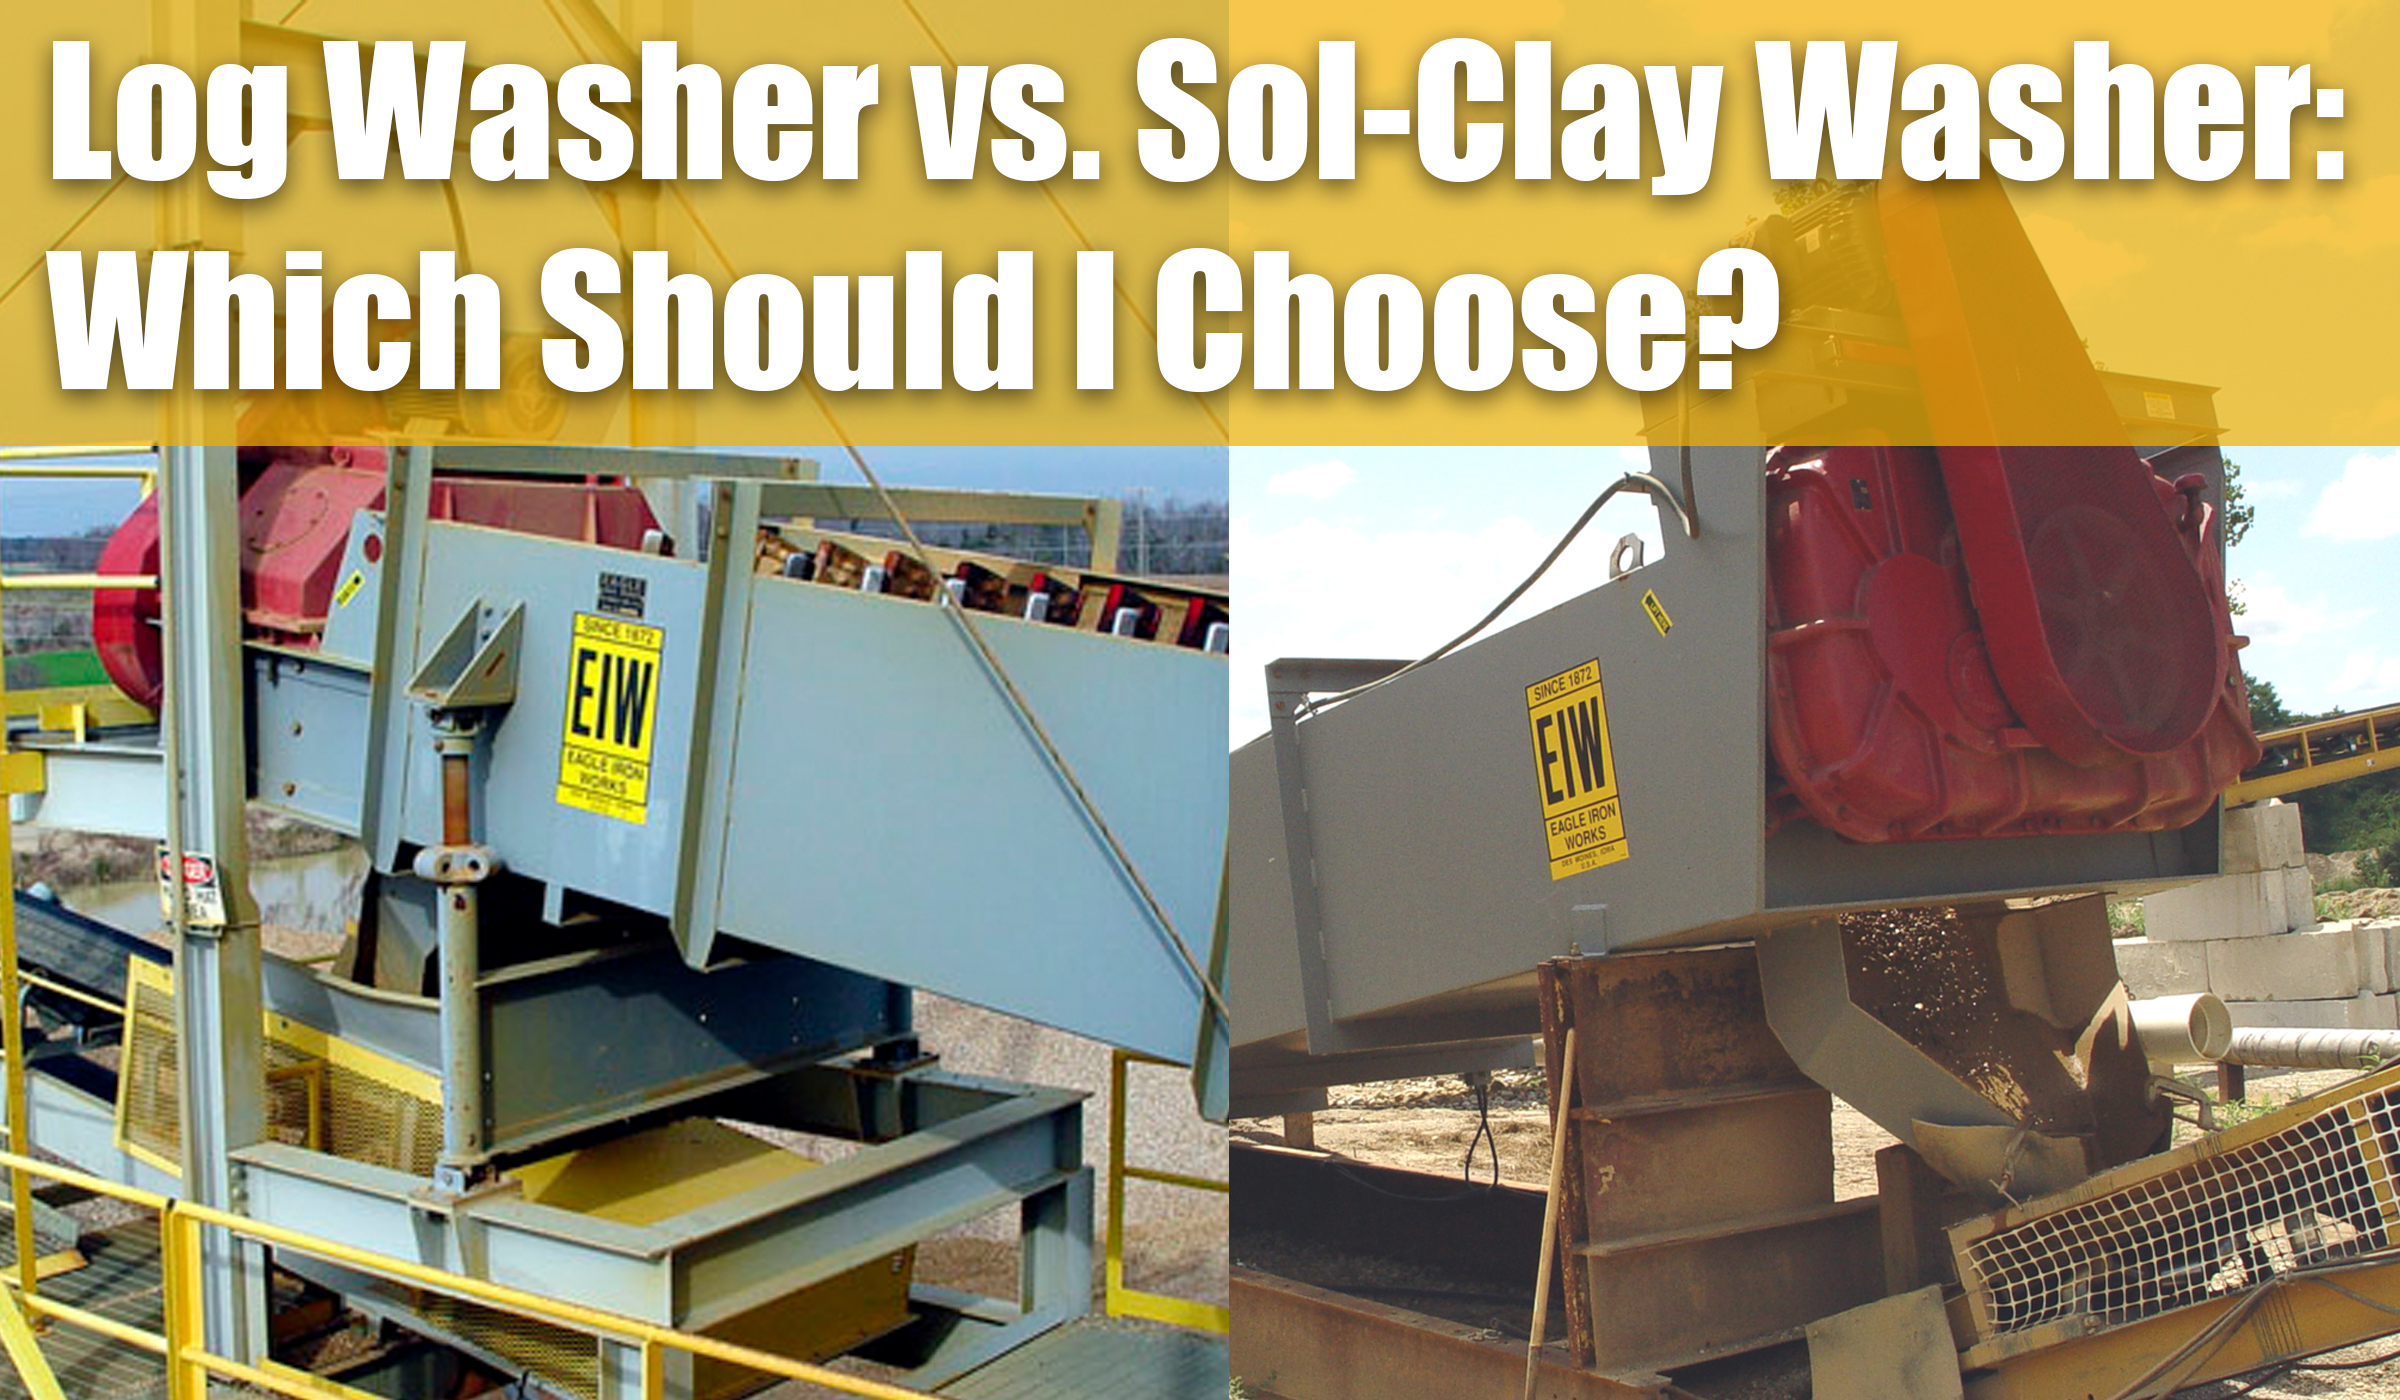 Log Washer vs. Sol-Clay_5